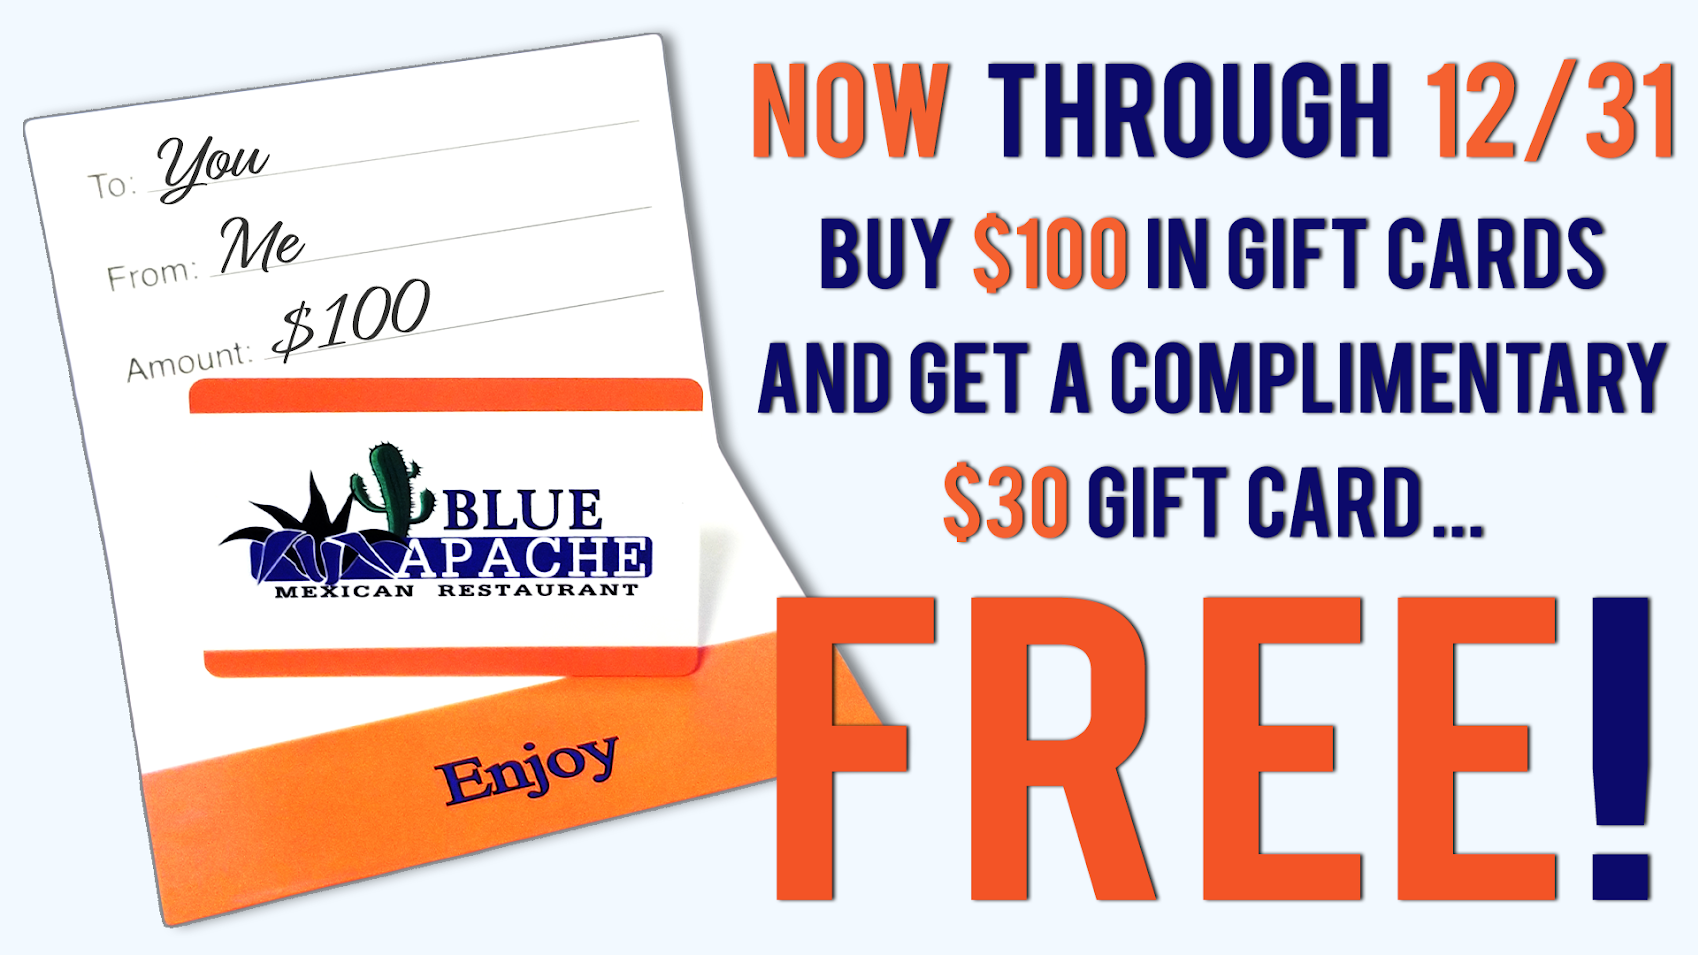 Purchase Gift Cards Today!